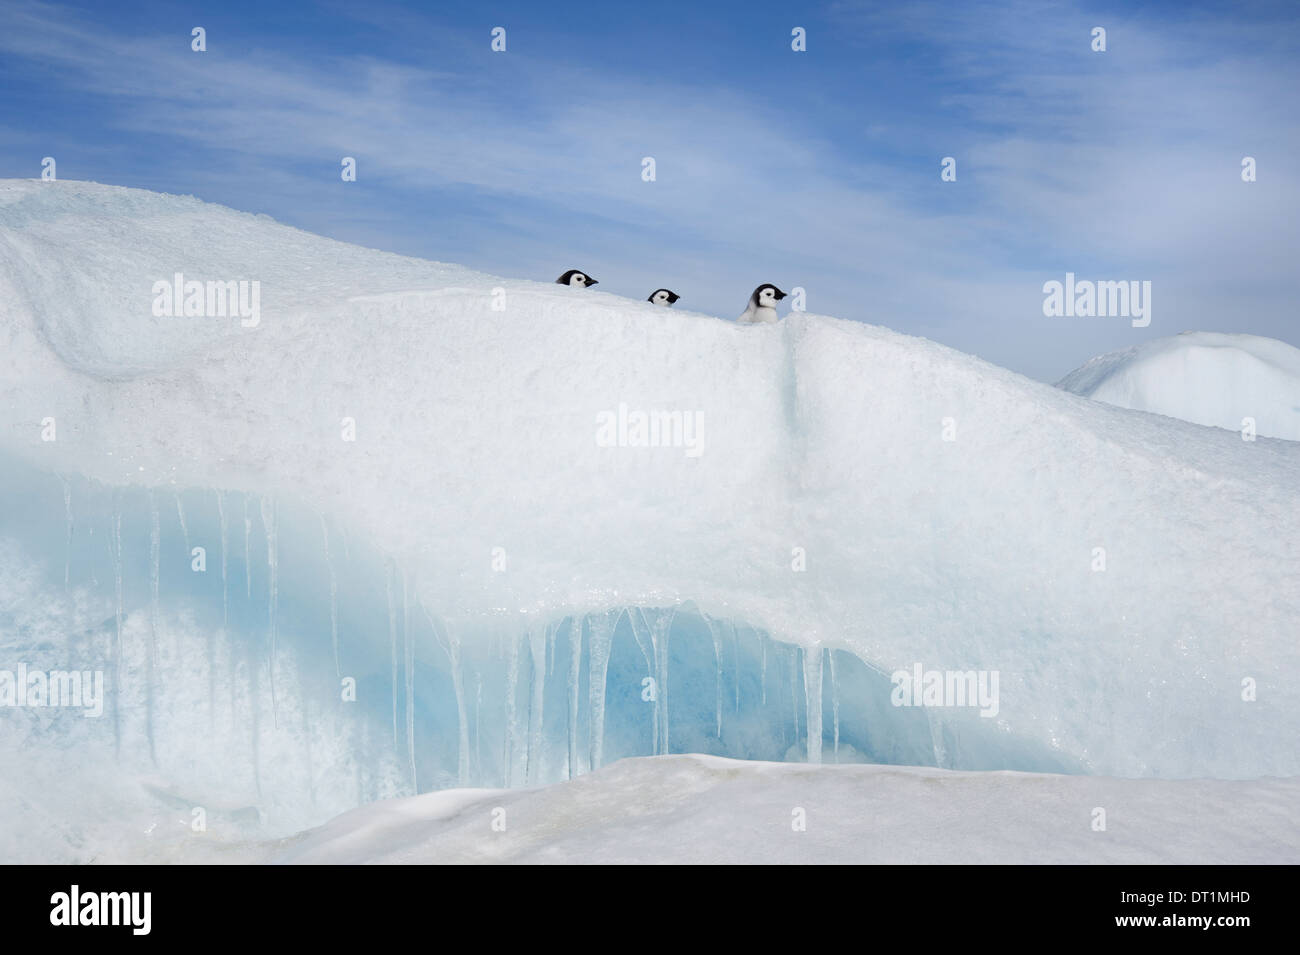 Three penguin chicks in a row heads seen peering over a snowdrift or ridge in the ice on Snow Hill island - Stock Image